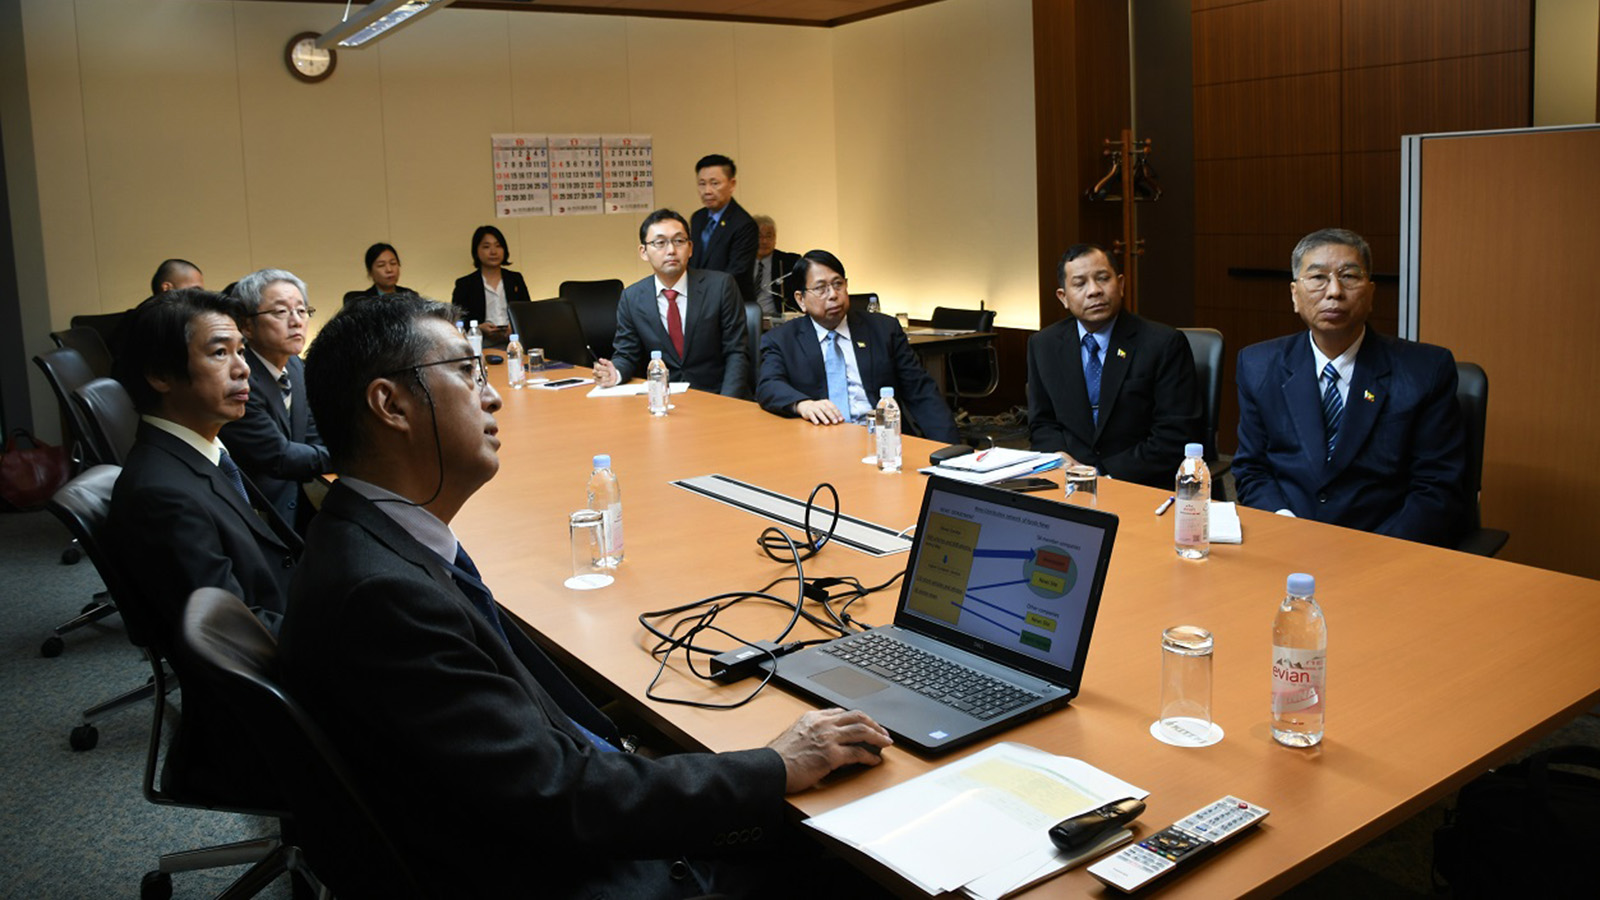 The Myanmar delegation led by Union Minister Dr Pe Myint visits the Kyodo News in Tokyo, Japan, yesterday. Photo: MNA